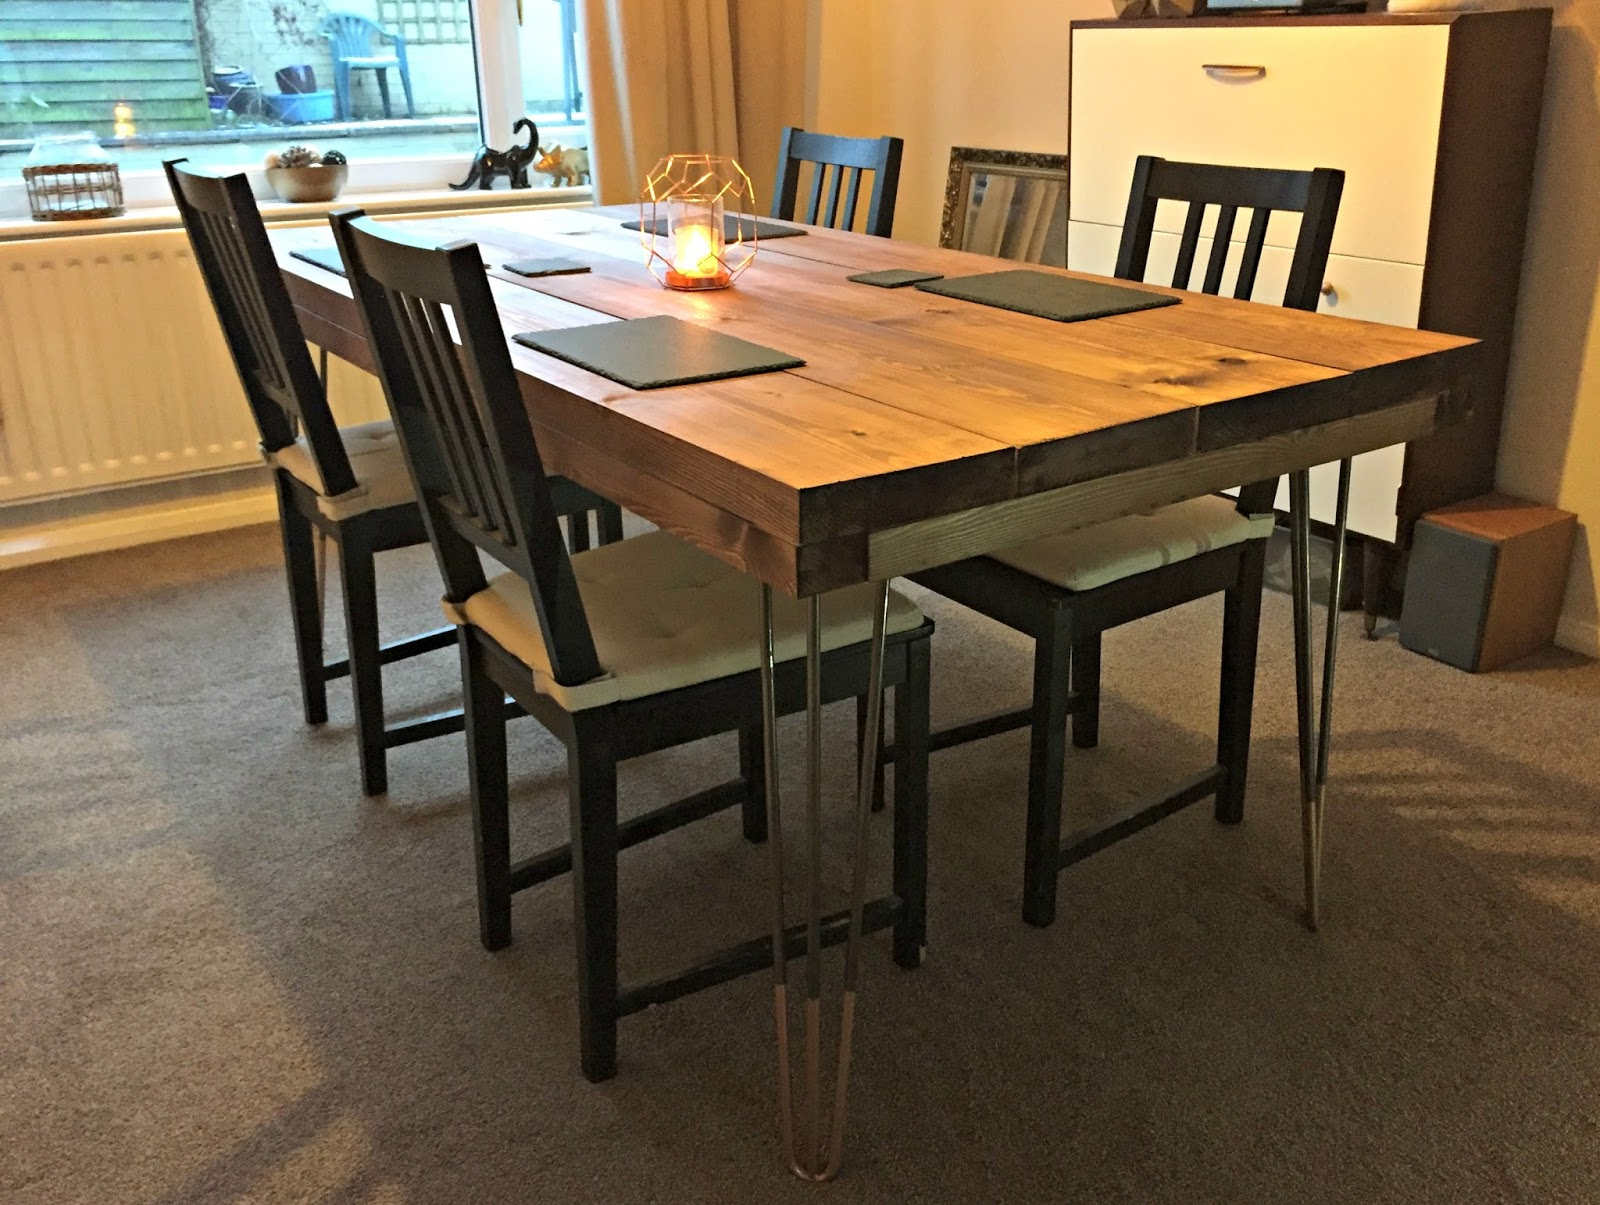 Hairpin Legs Ikea Diy Tutorial Rustic Dining Table With Hairpin Legs Tea